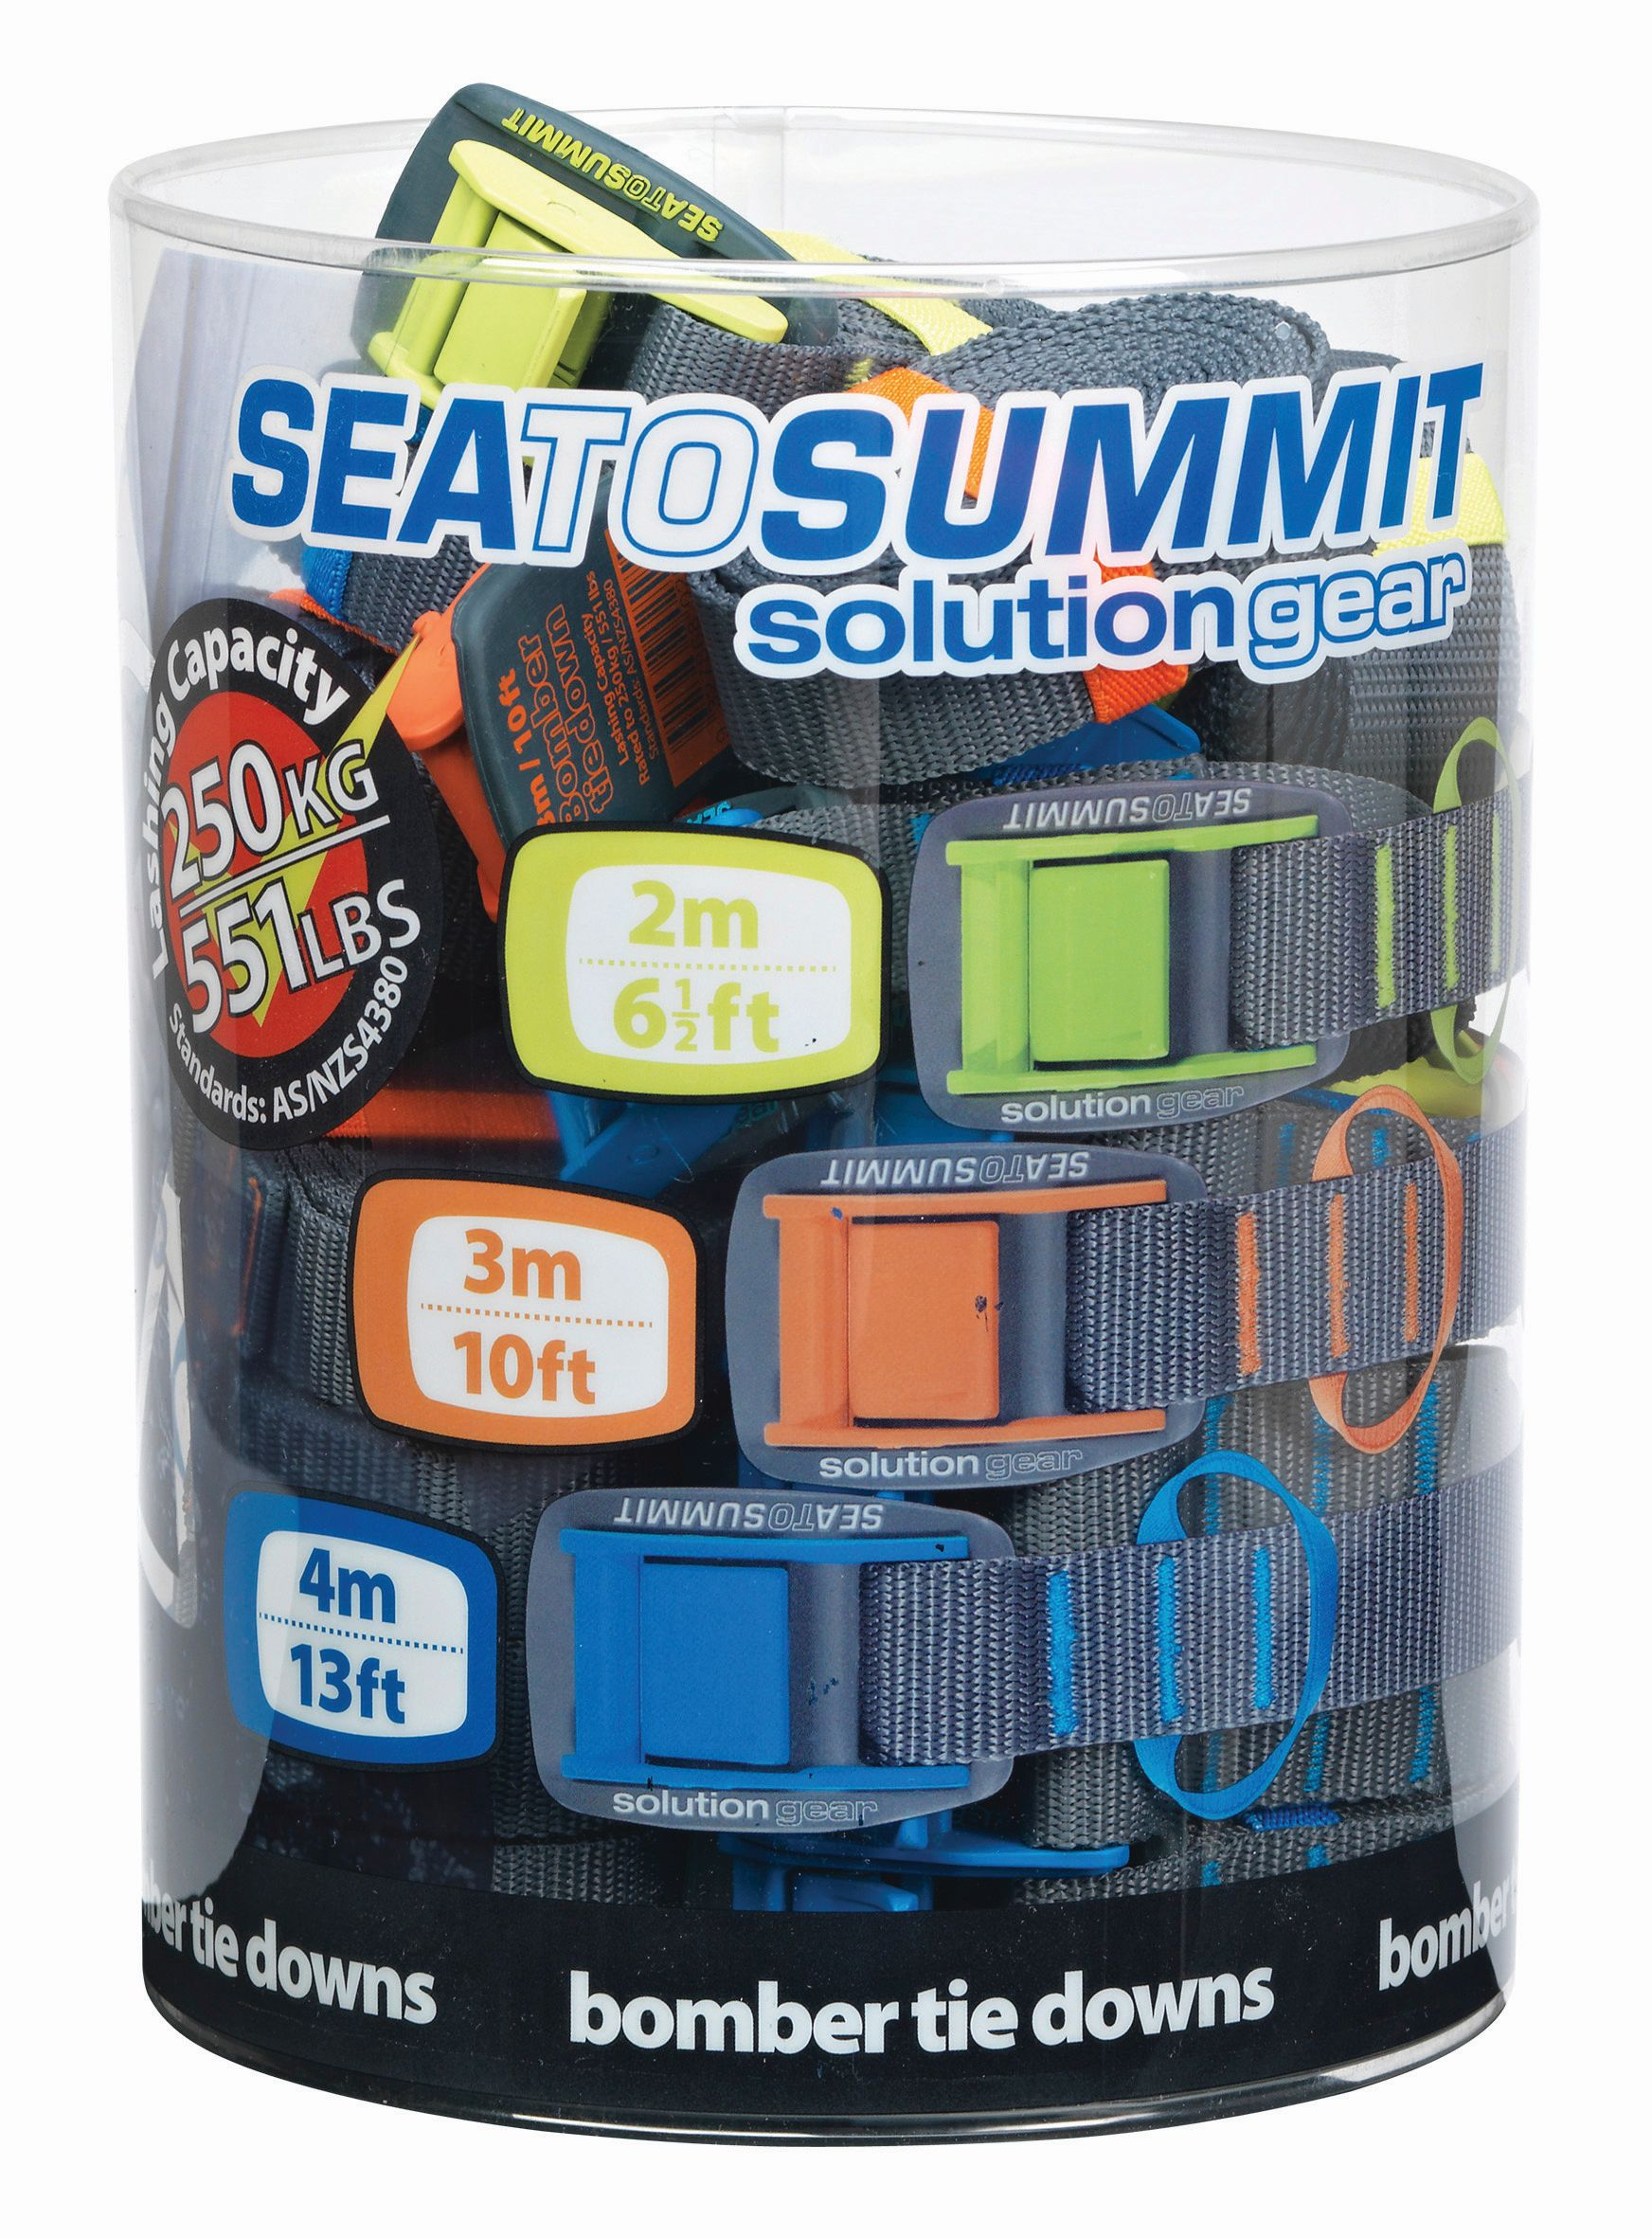 Sea To Summit Bomber Tie Down Retail Pack 6 units of each size-30